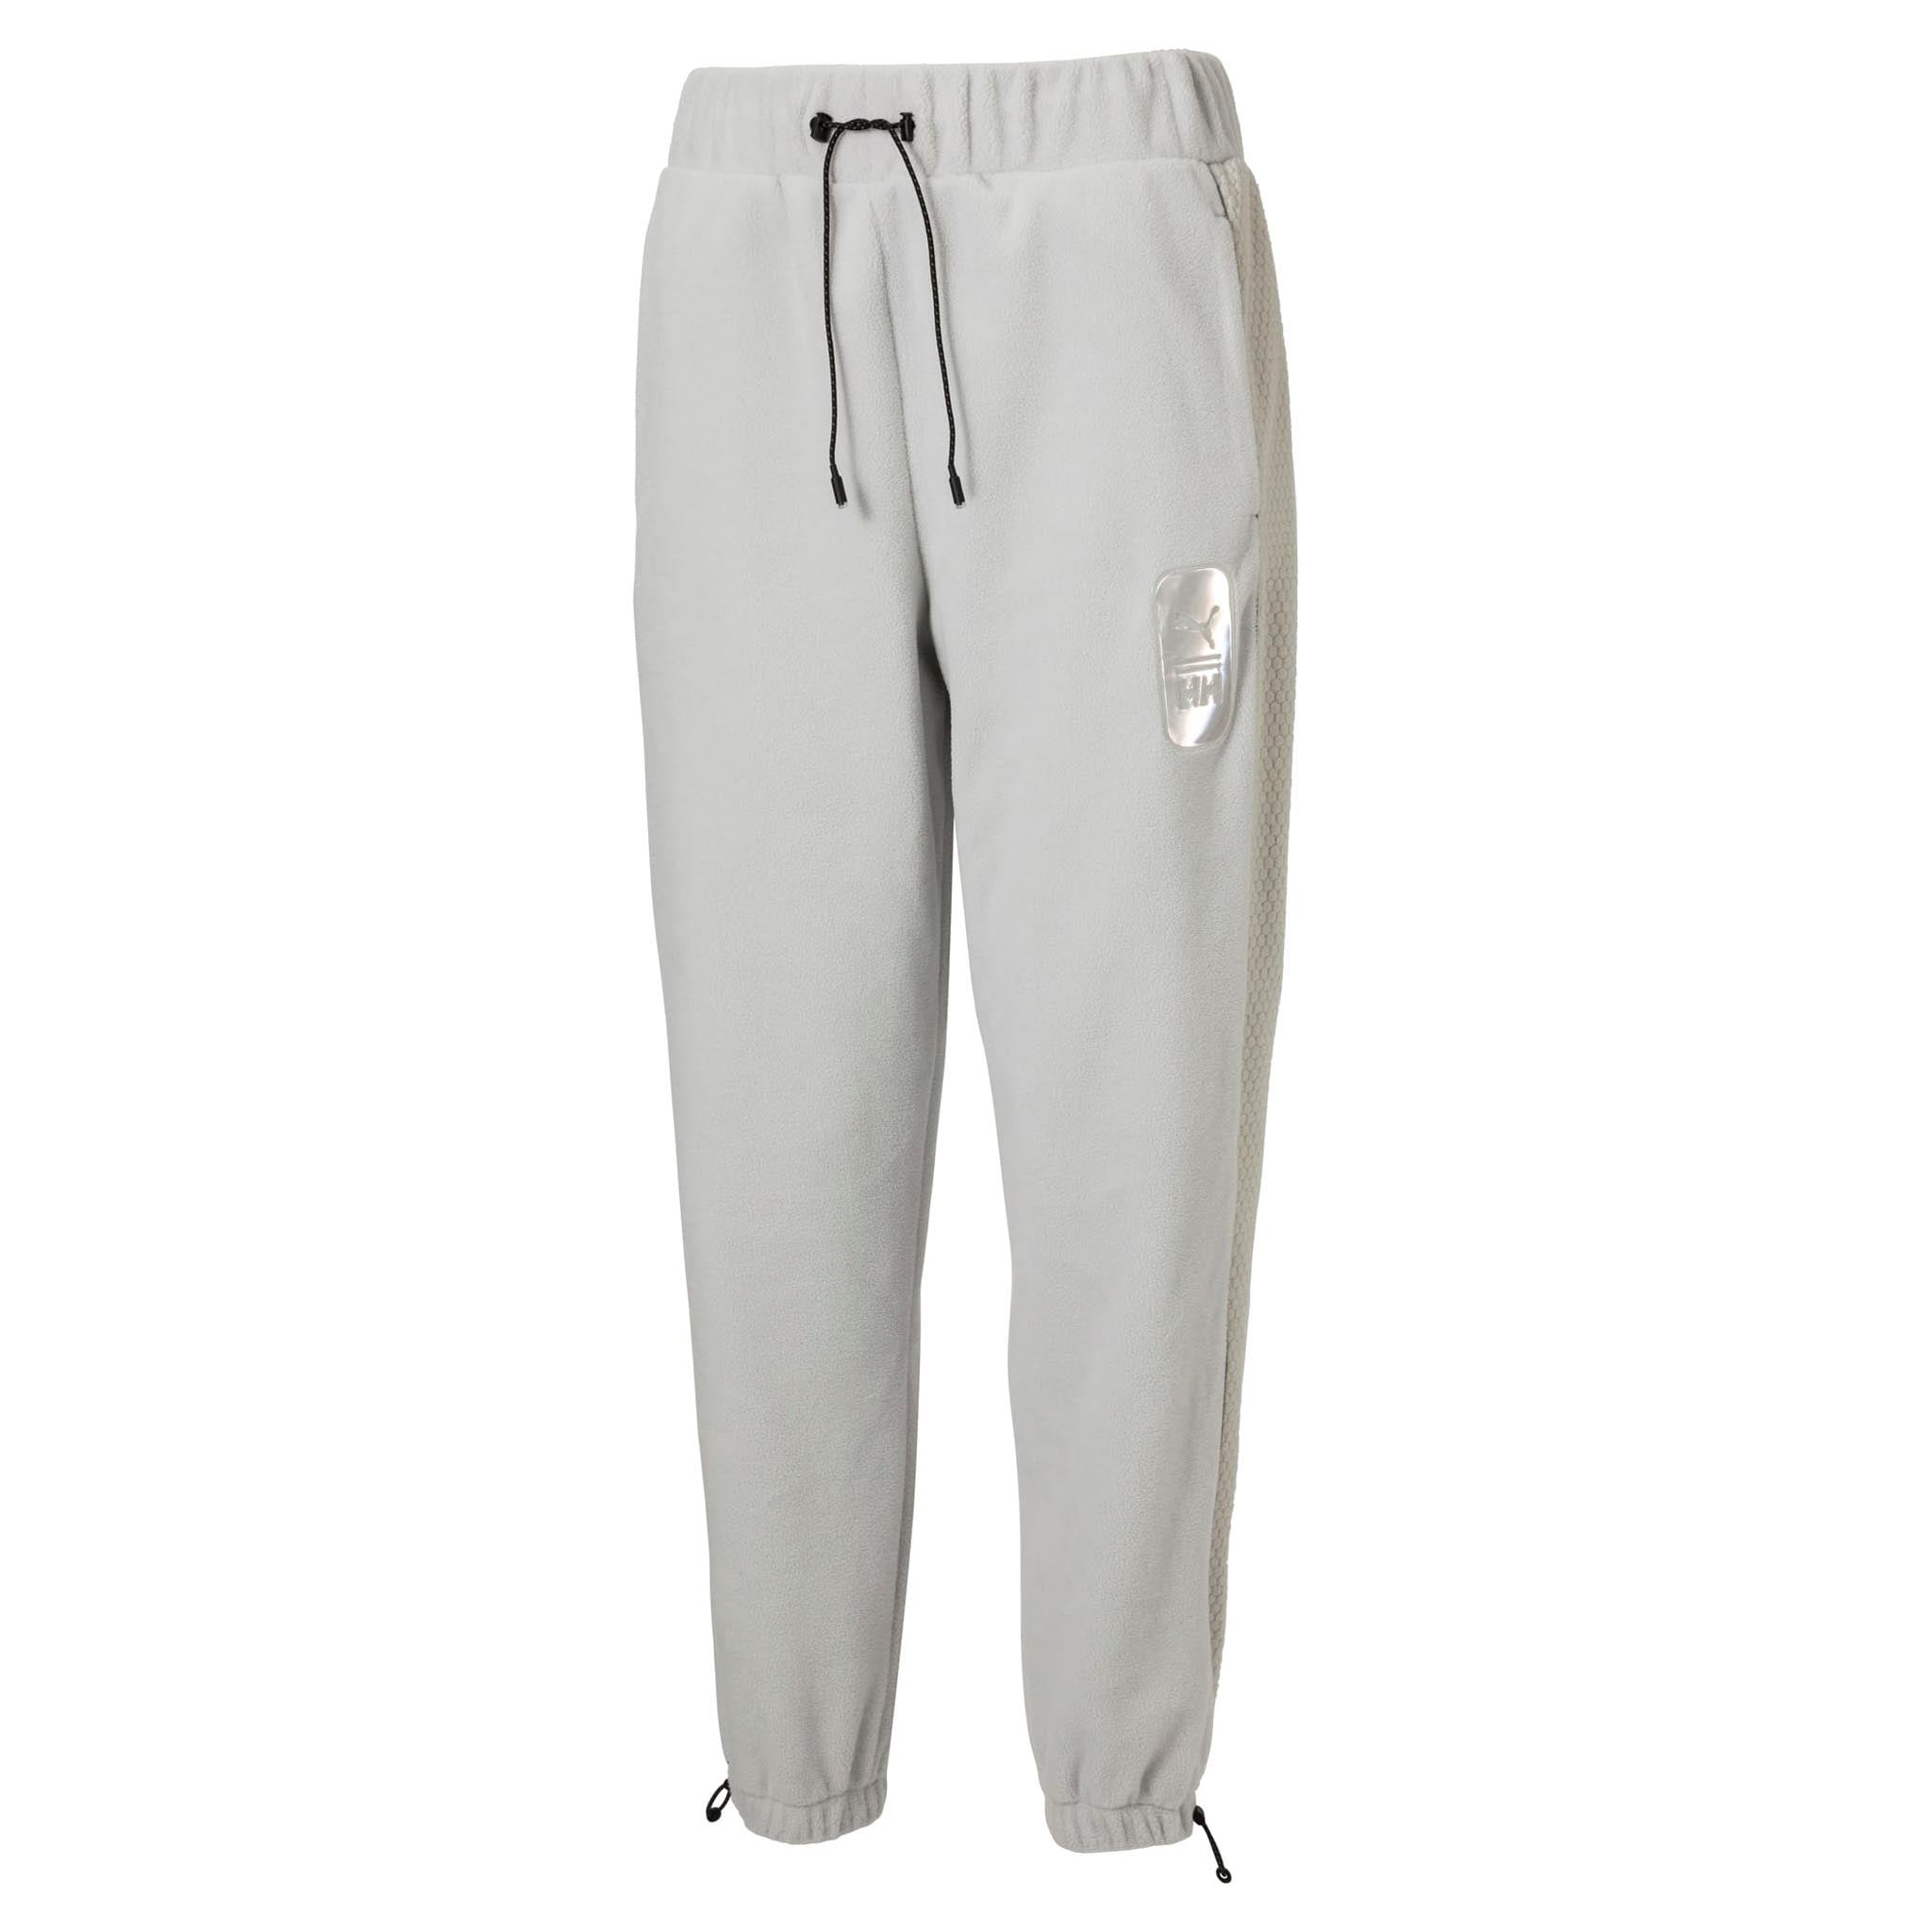 Puma x Helly Hansen Polar Fleece Pant Glacier Gray